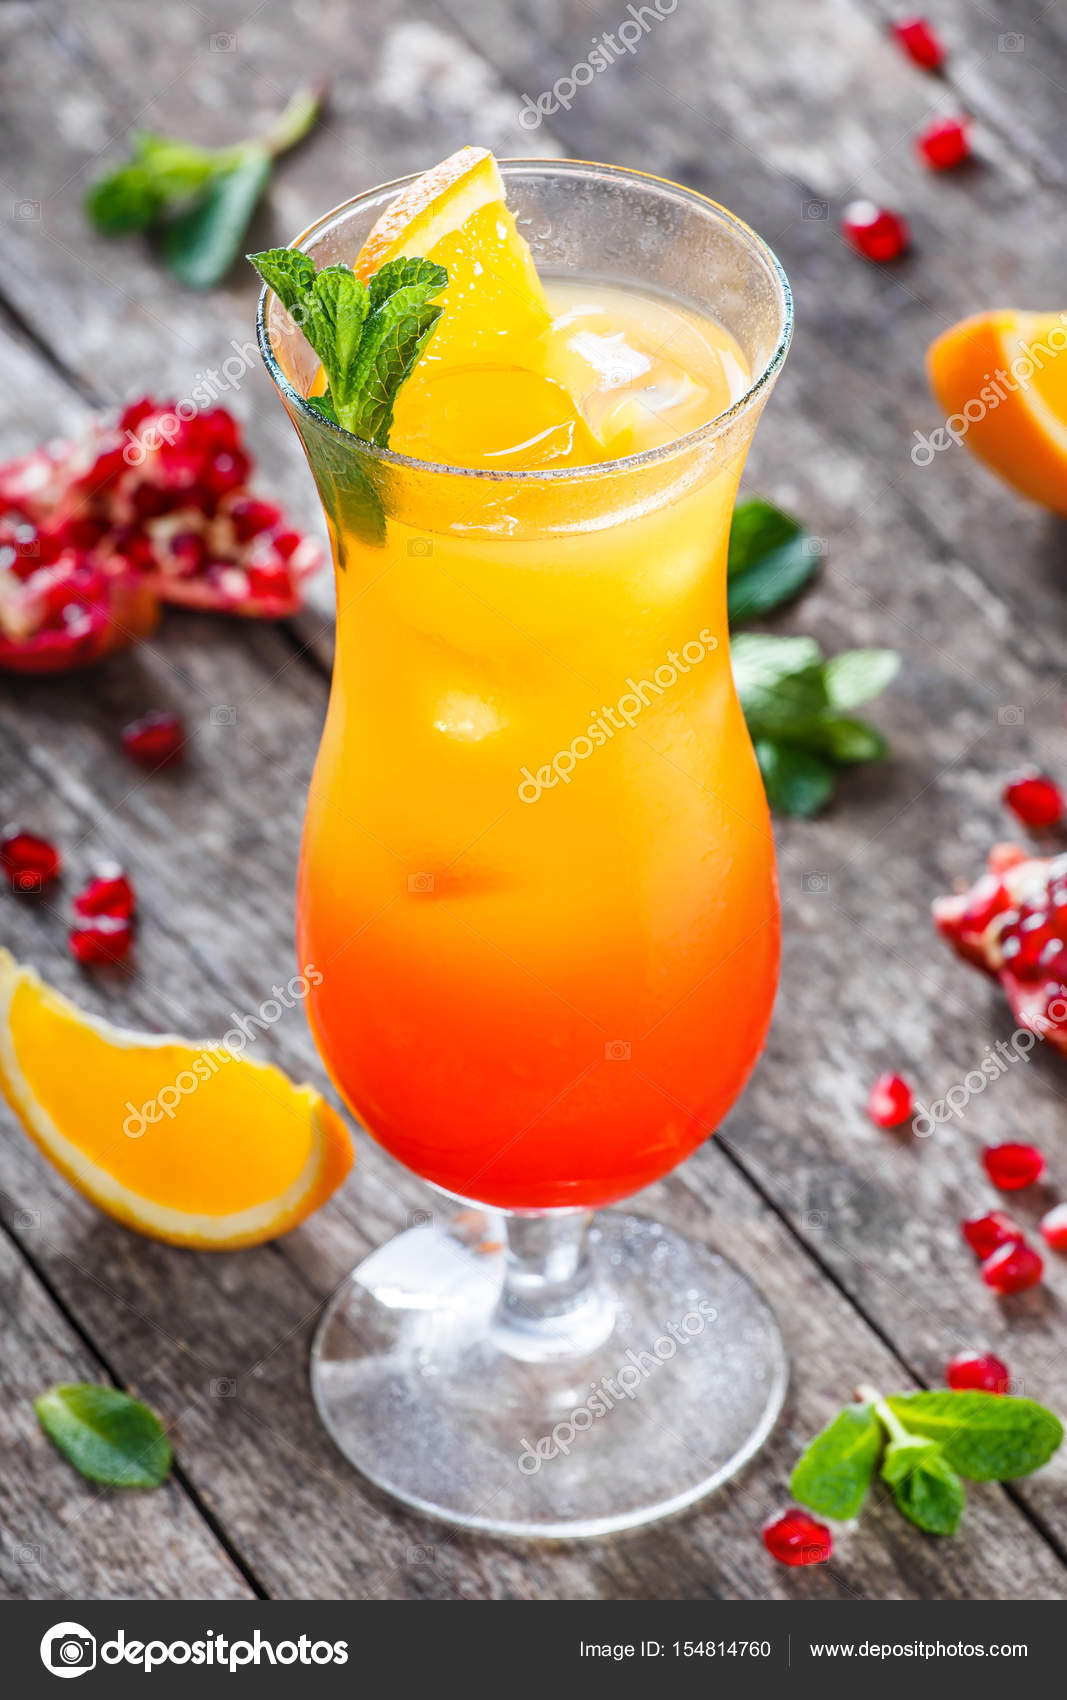 Summer Drinks With Tequila  Tequila sunrise cocktail with mint orange and pomegranate